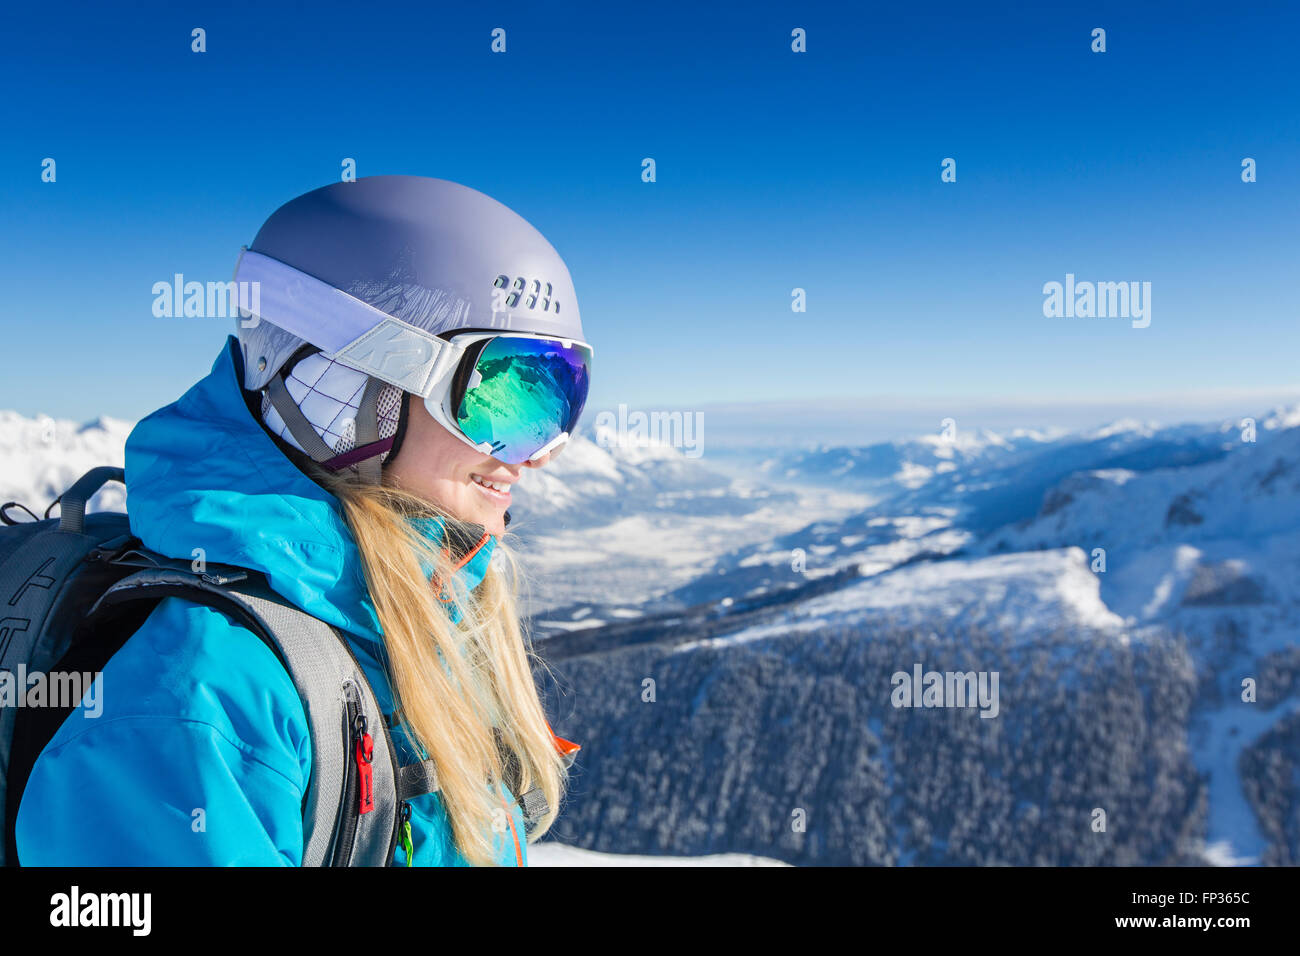 Skier, freerider with ski goggles and helmet looking into the distance, Inntal valley behind, Axamer Lizum, Tyrol, - Stock Image